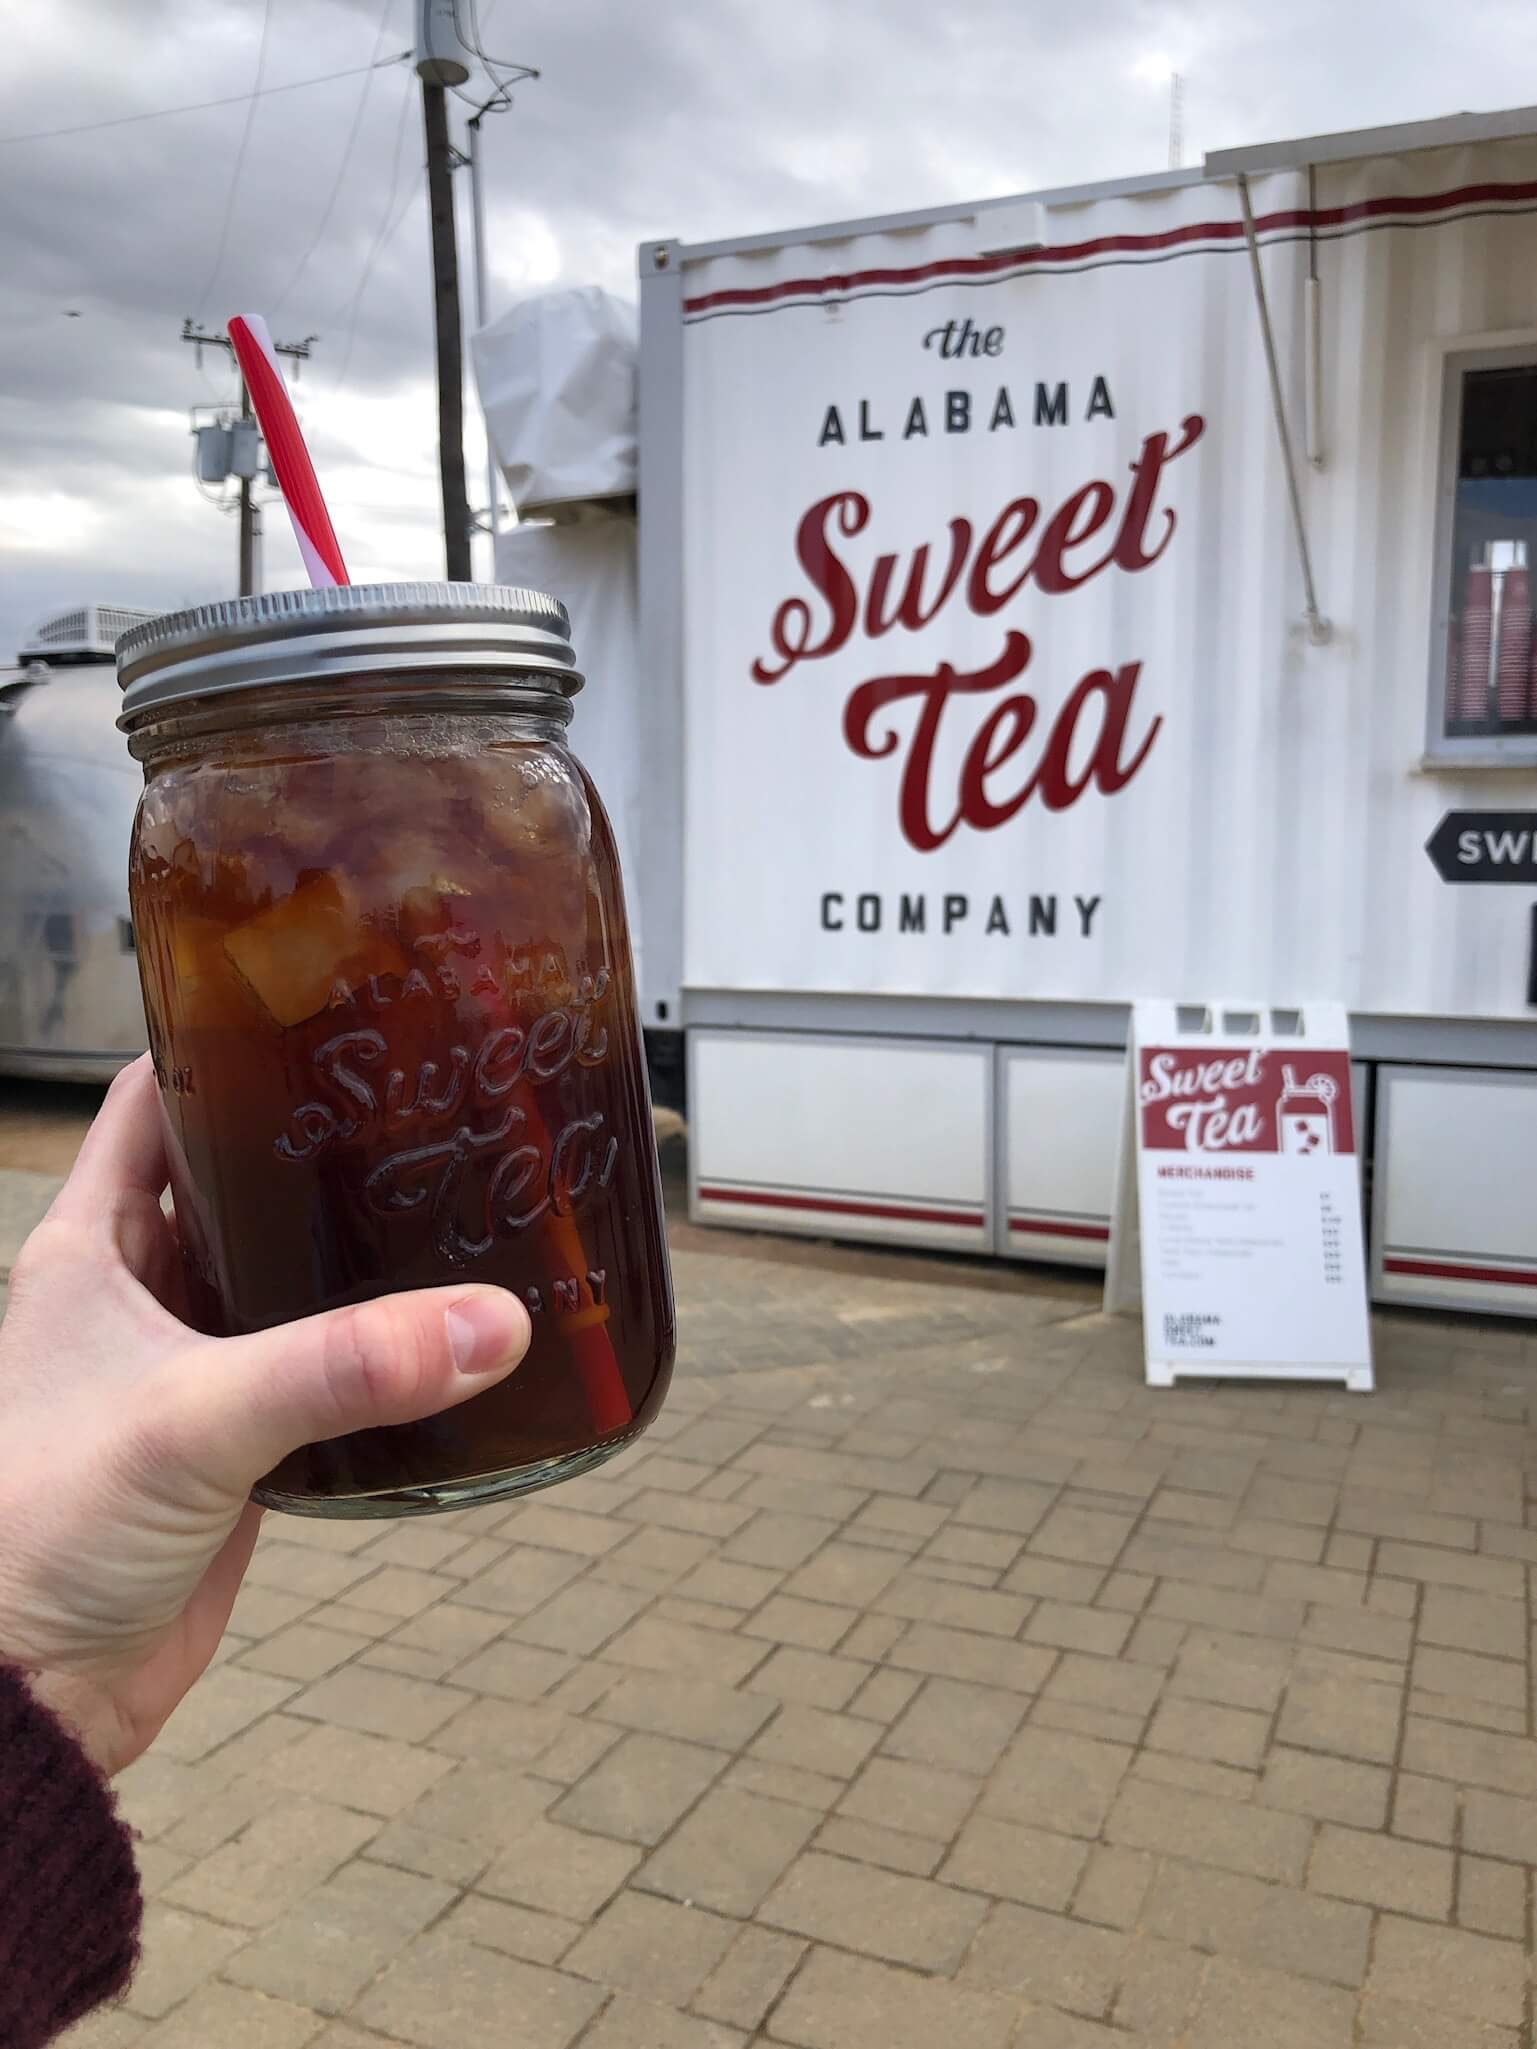 - Don't forget to finish off your sugar-coma with an Alabama Sweet Tea. They're gigantic and perfect in every way. Plus, you get to keep the over-sized mason jar cup it comes in! (I'm currently using mine to hold cotton balls in my bathroom haha)